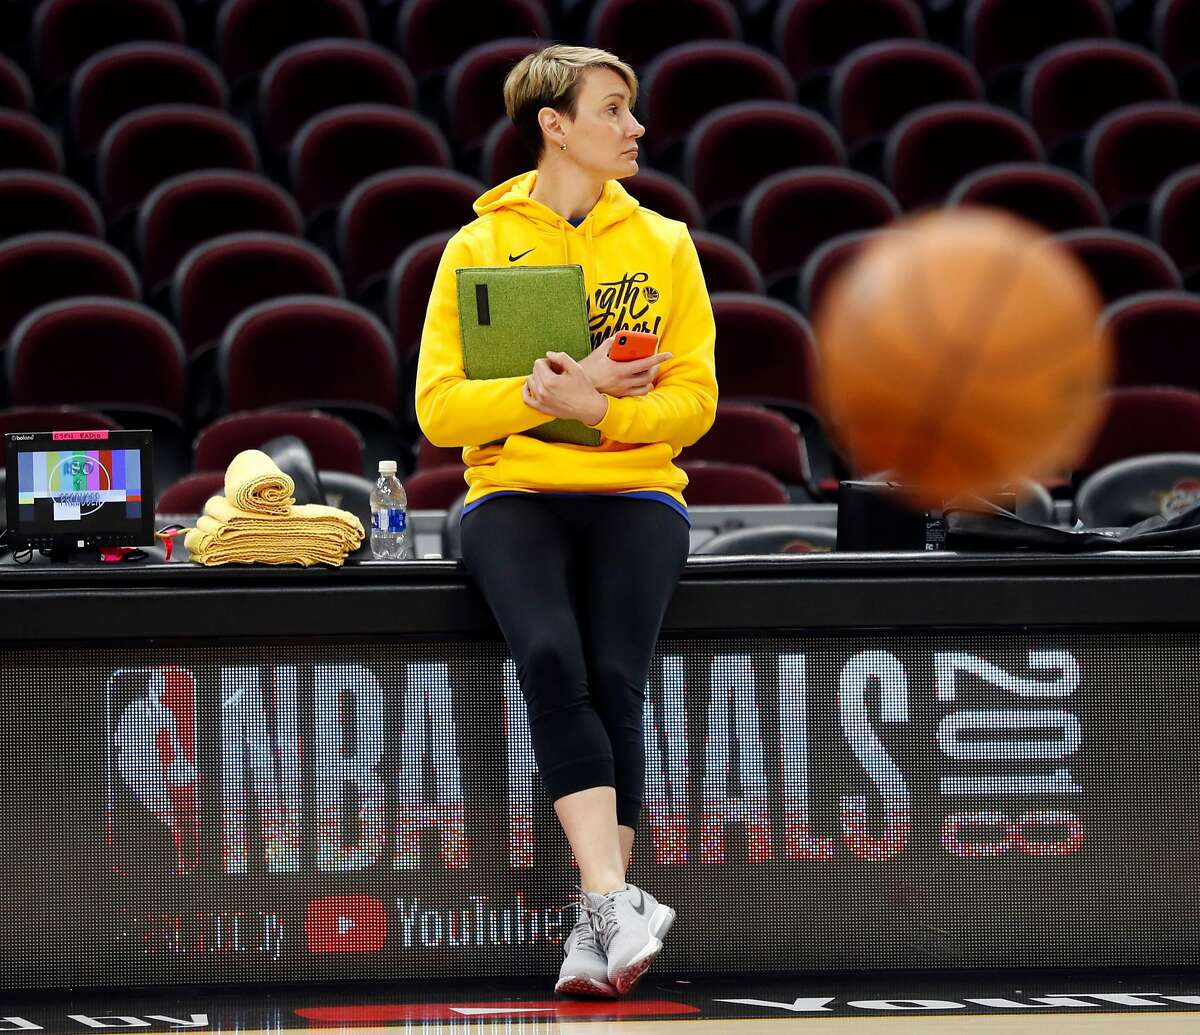 Golden State Warriors' head performance therapist Chelsea Lane during practice in advance of Game 3 of the NBA Finals at Quickens Loan Arena in Cleveland, OH on Tuesday, June 5, 2018.